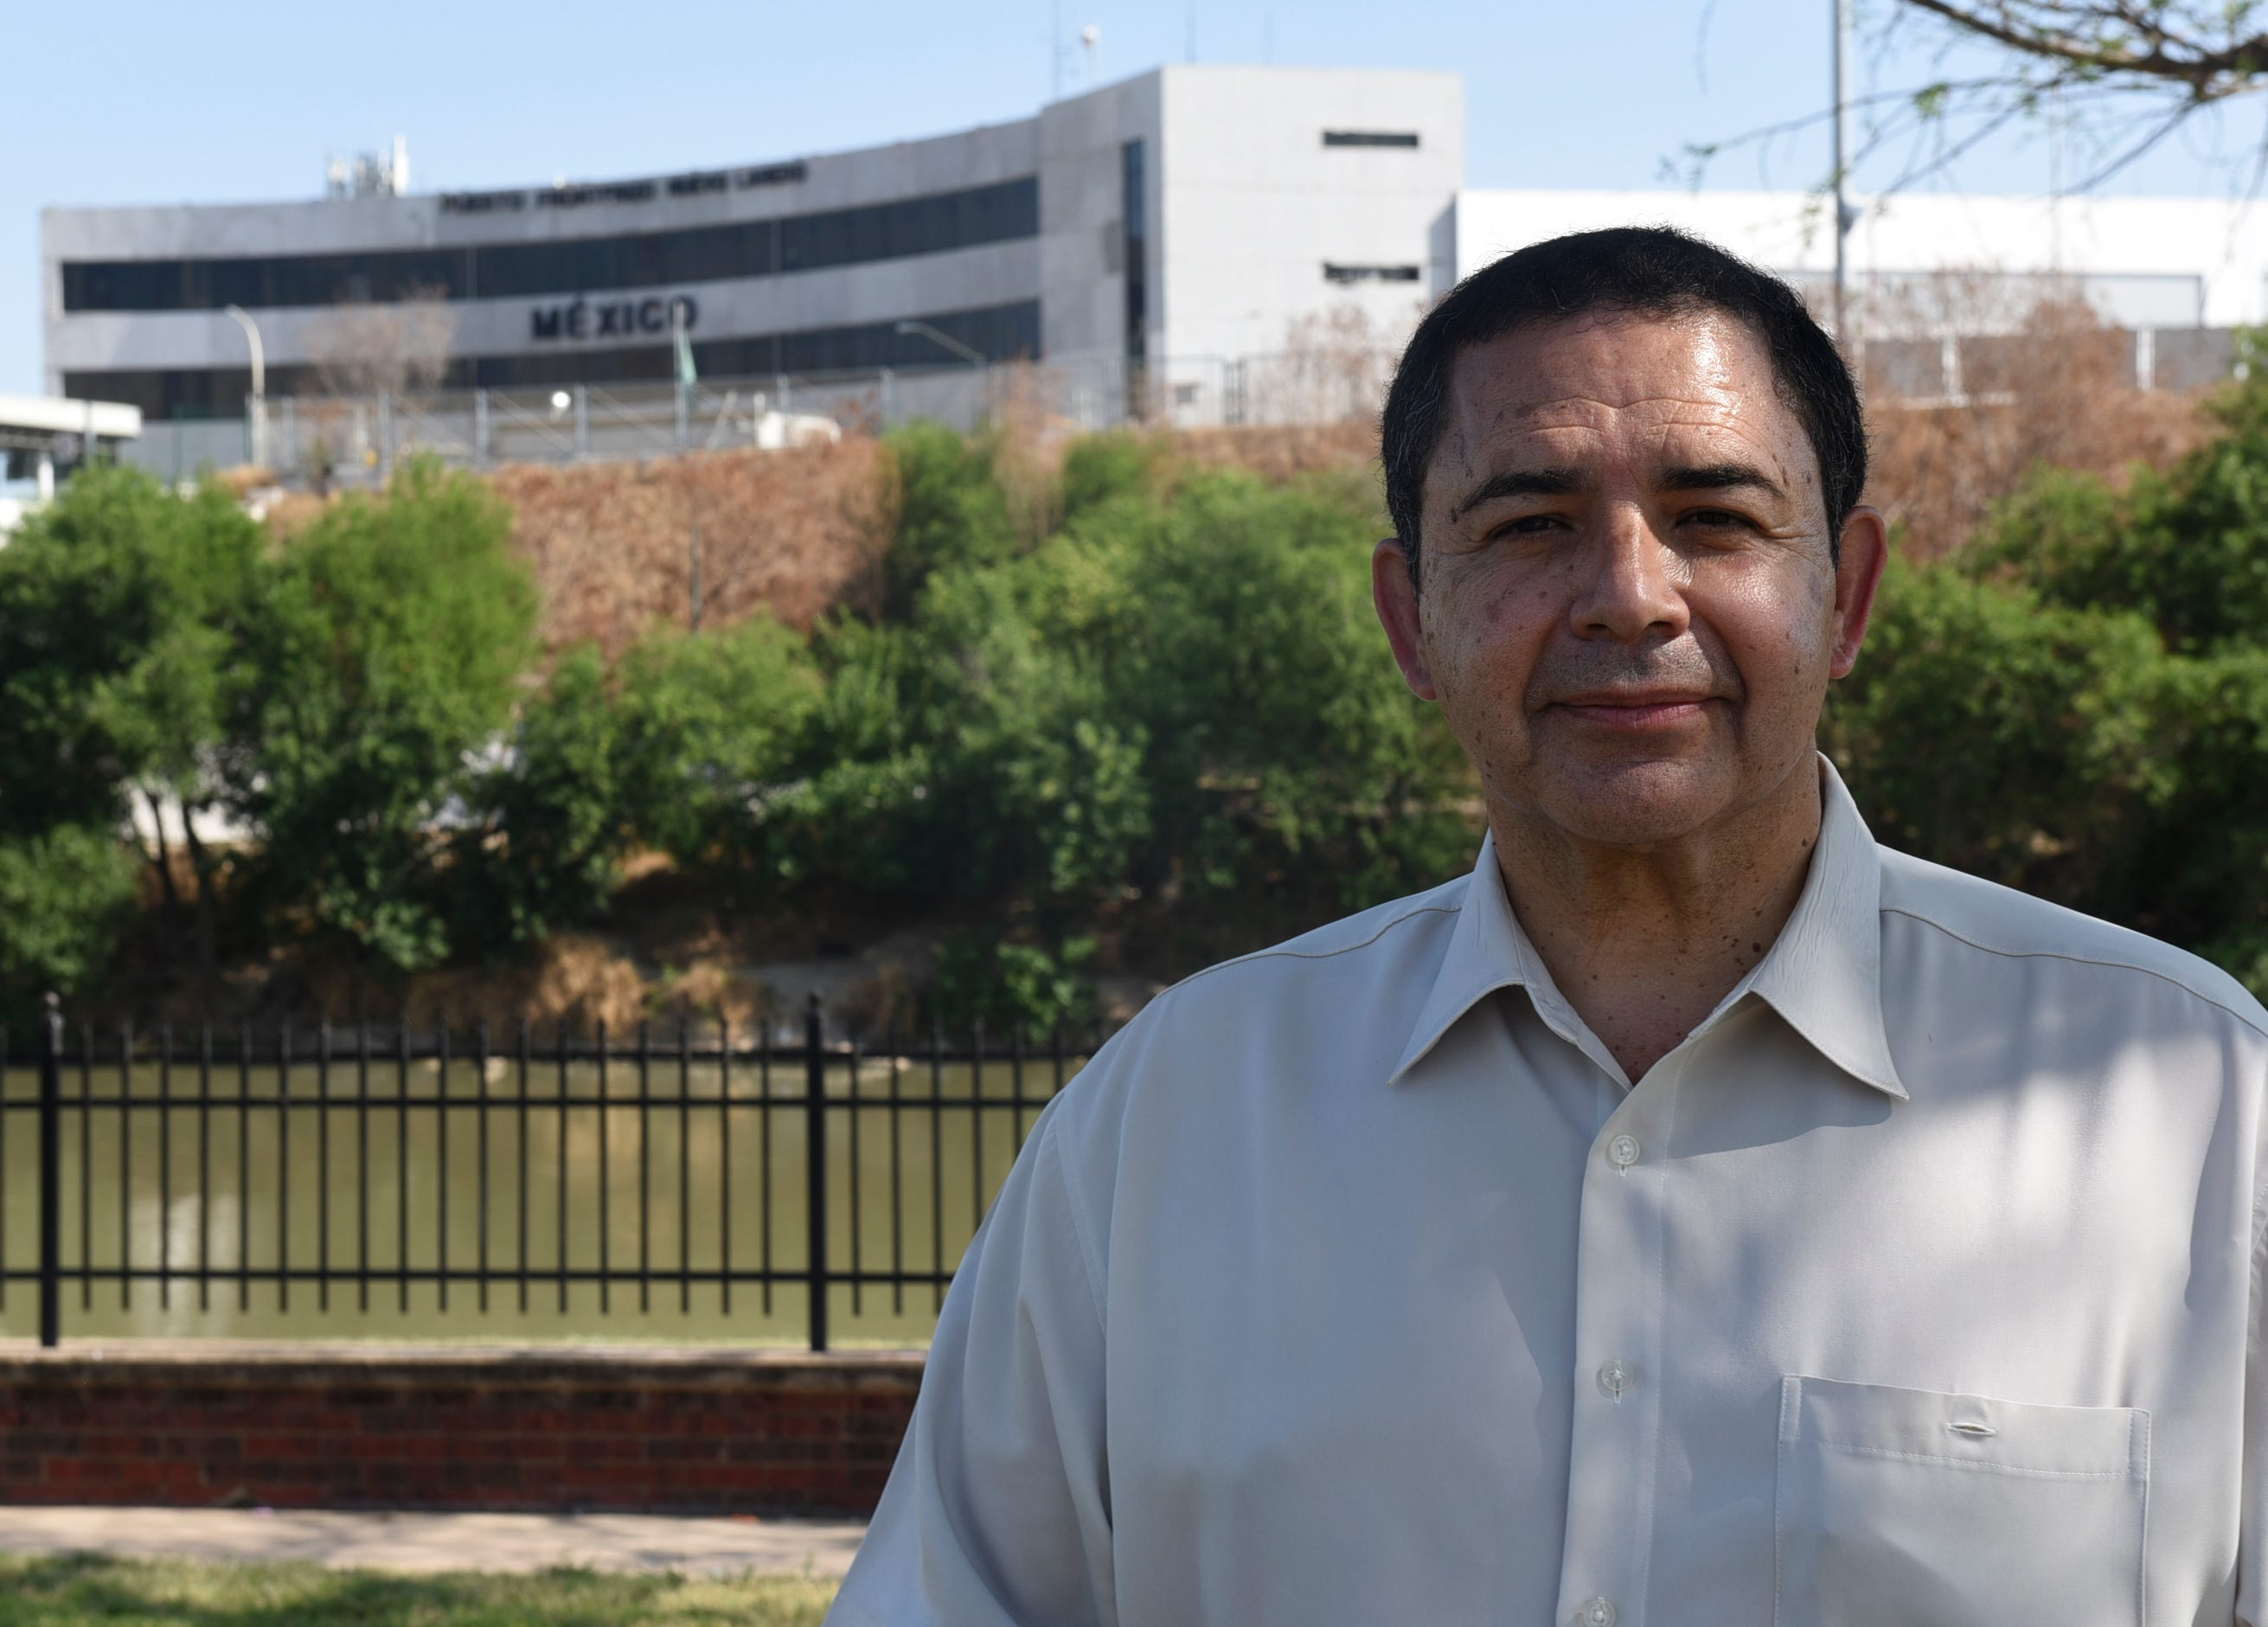 Rep. Henry Cuellar, D-Texas, stands in front of the Rio Grande River and U.S.-Mexico border April 8, 2021, in Laredo, Texas.